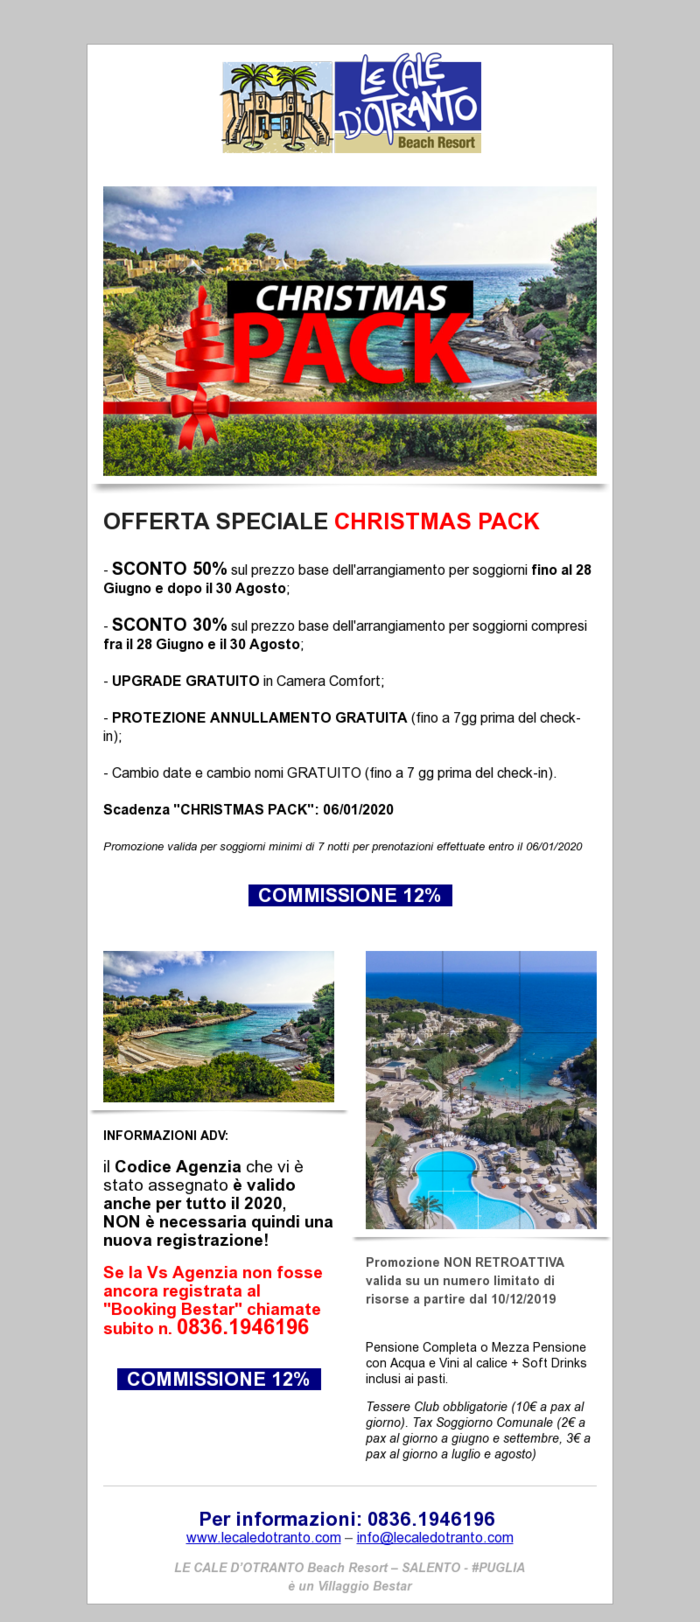 Christmas Pack by Le Cale d'Otranto